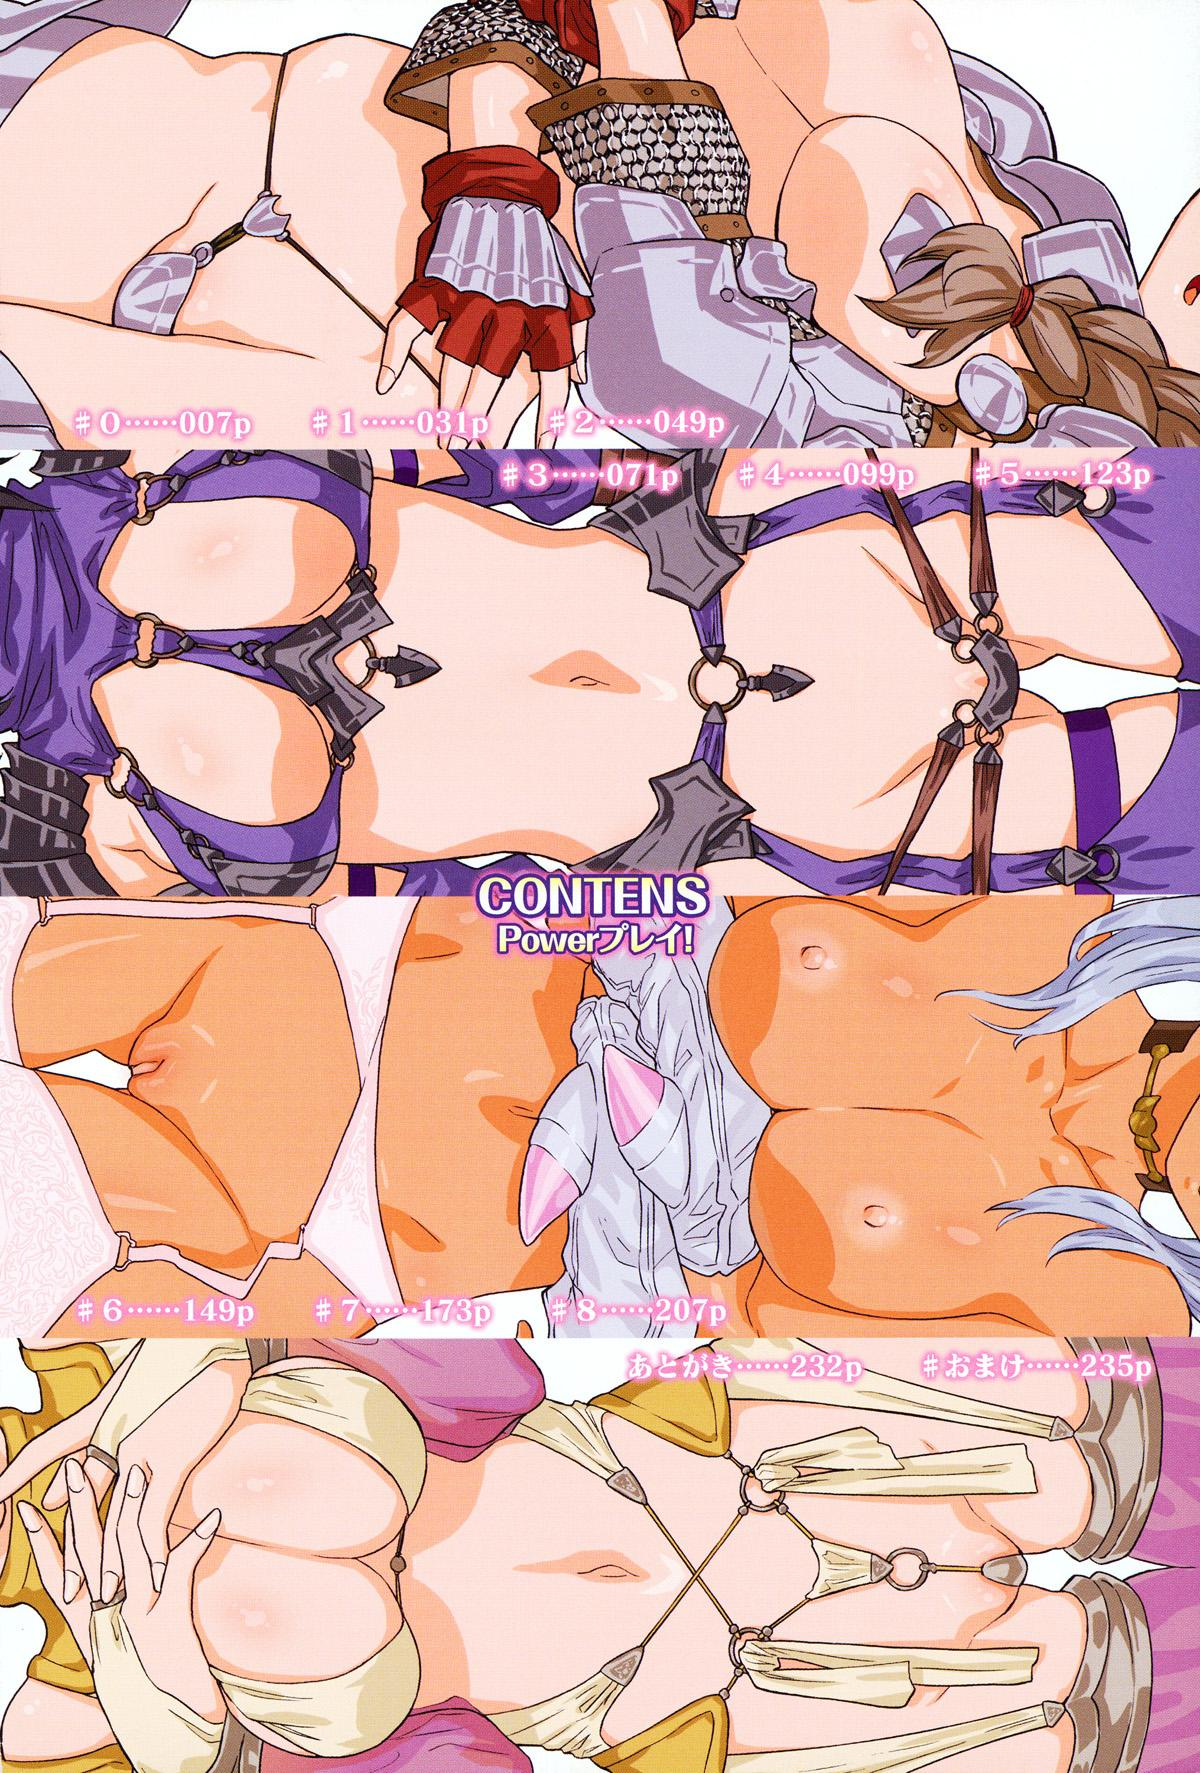 Adult Comic Hentai Power Play by Yamatogawa Uncensored Complete High Quality